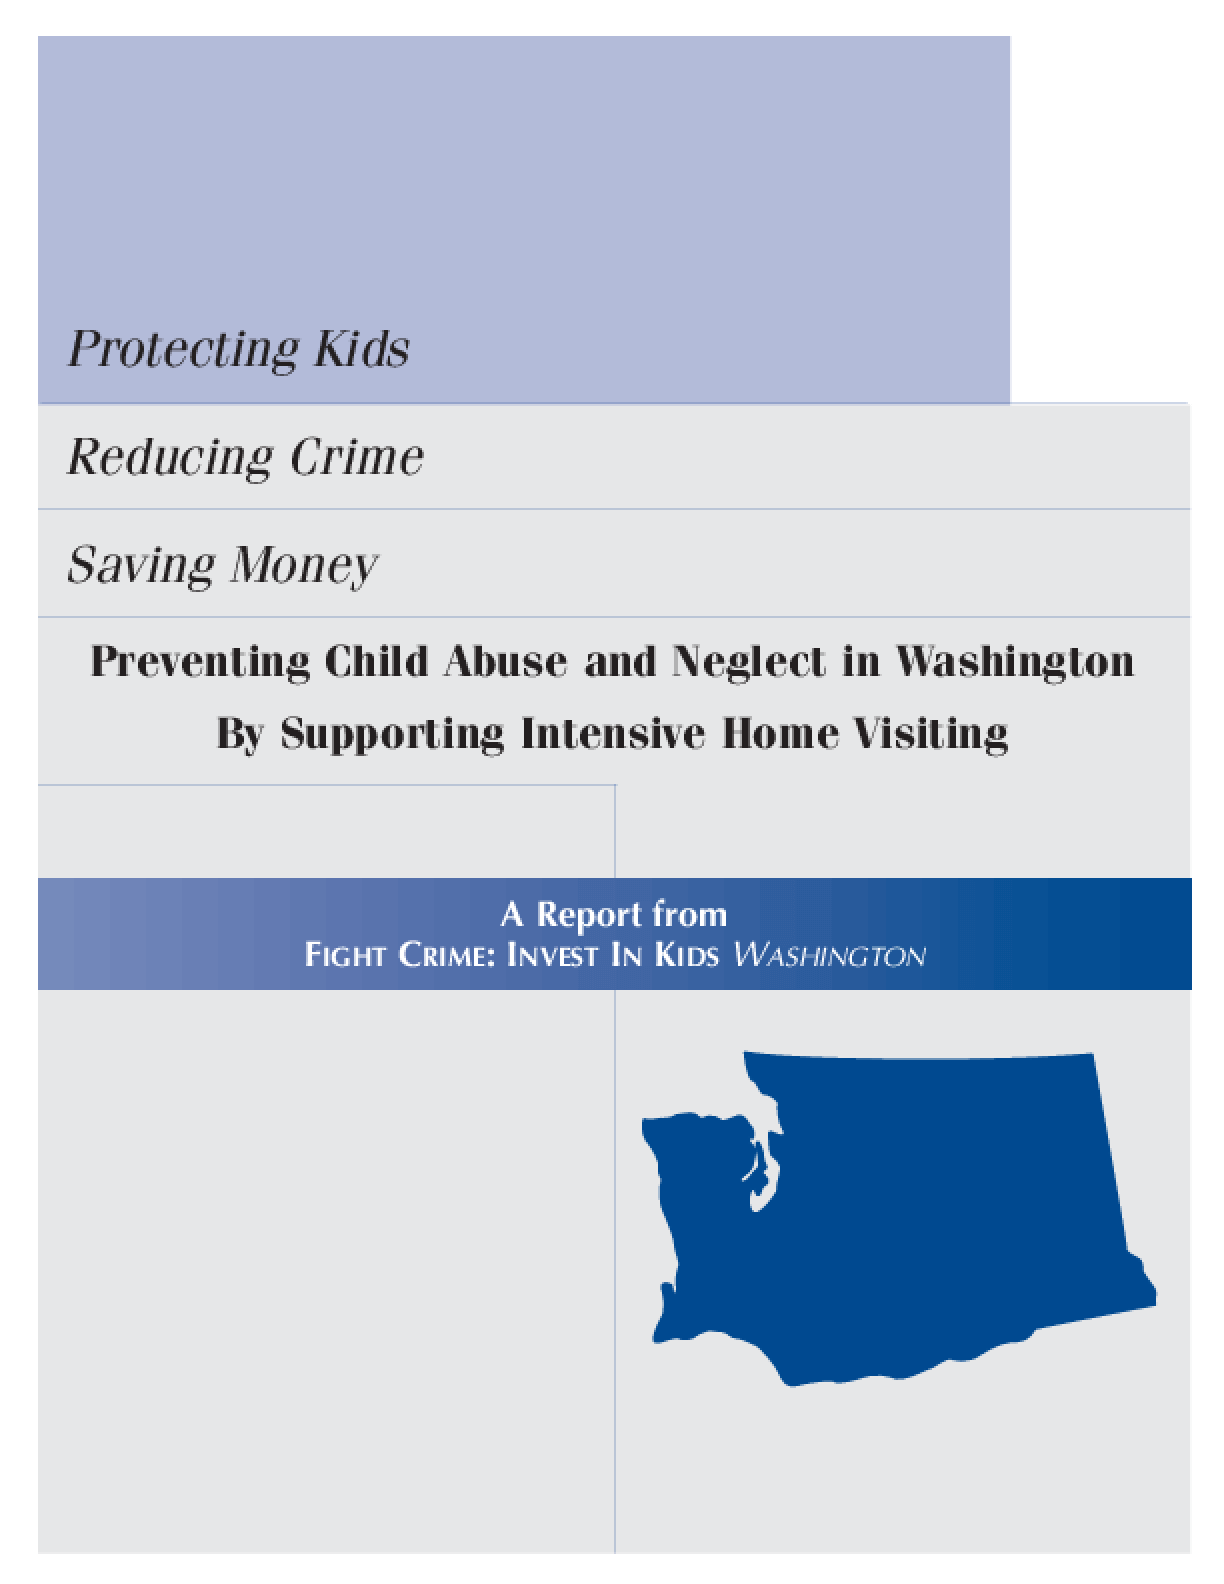 a discussion of the us national problem of child abuse and neglect Presents information on topics that are relevant across the child welfare continuum, including assessment, the role of courts, cultural competence, domestic violence, laws and policies, mental/behavioral health, statistics, substance abuse, and a range of other services that support children, youth, and families.